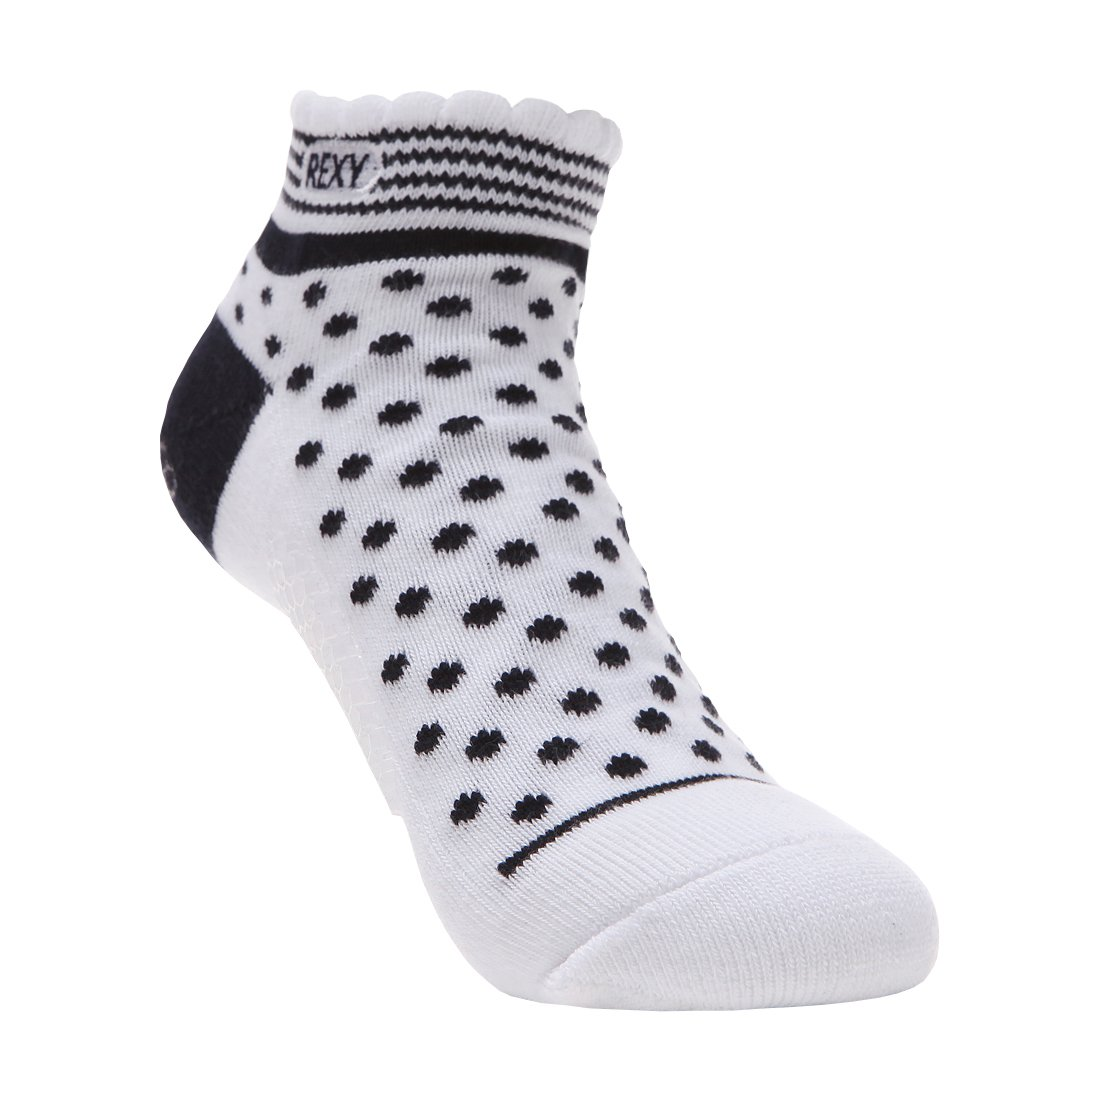 Rexy Functional Balance Women's Golf Ankle Socks Black Dot RGWT-10 by Rexy (Image #2)